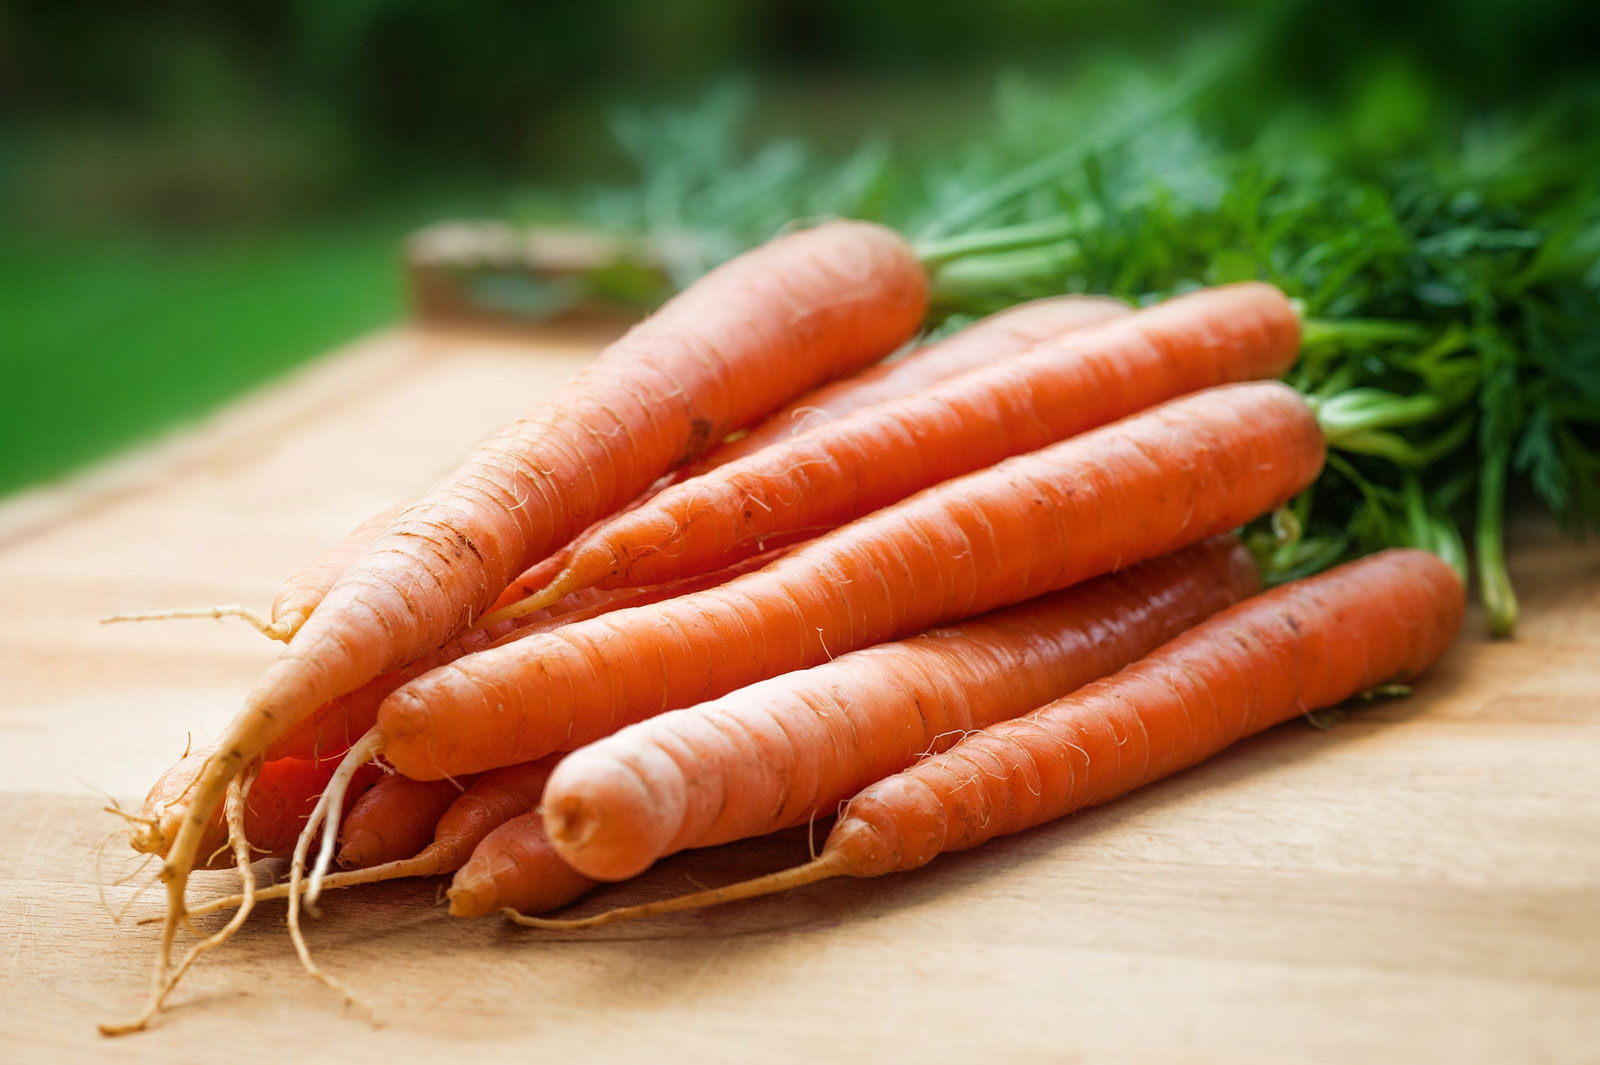 Carrots | The 12 Proven Benefits Of Juicing Carrots